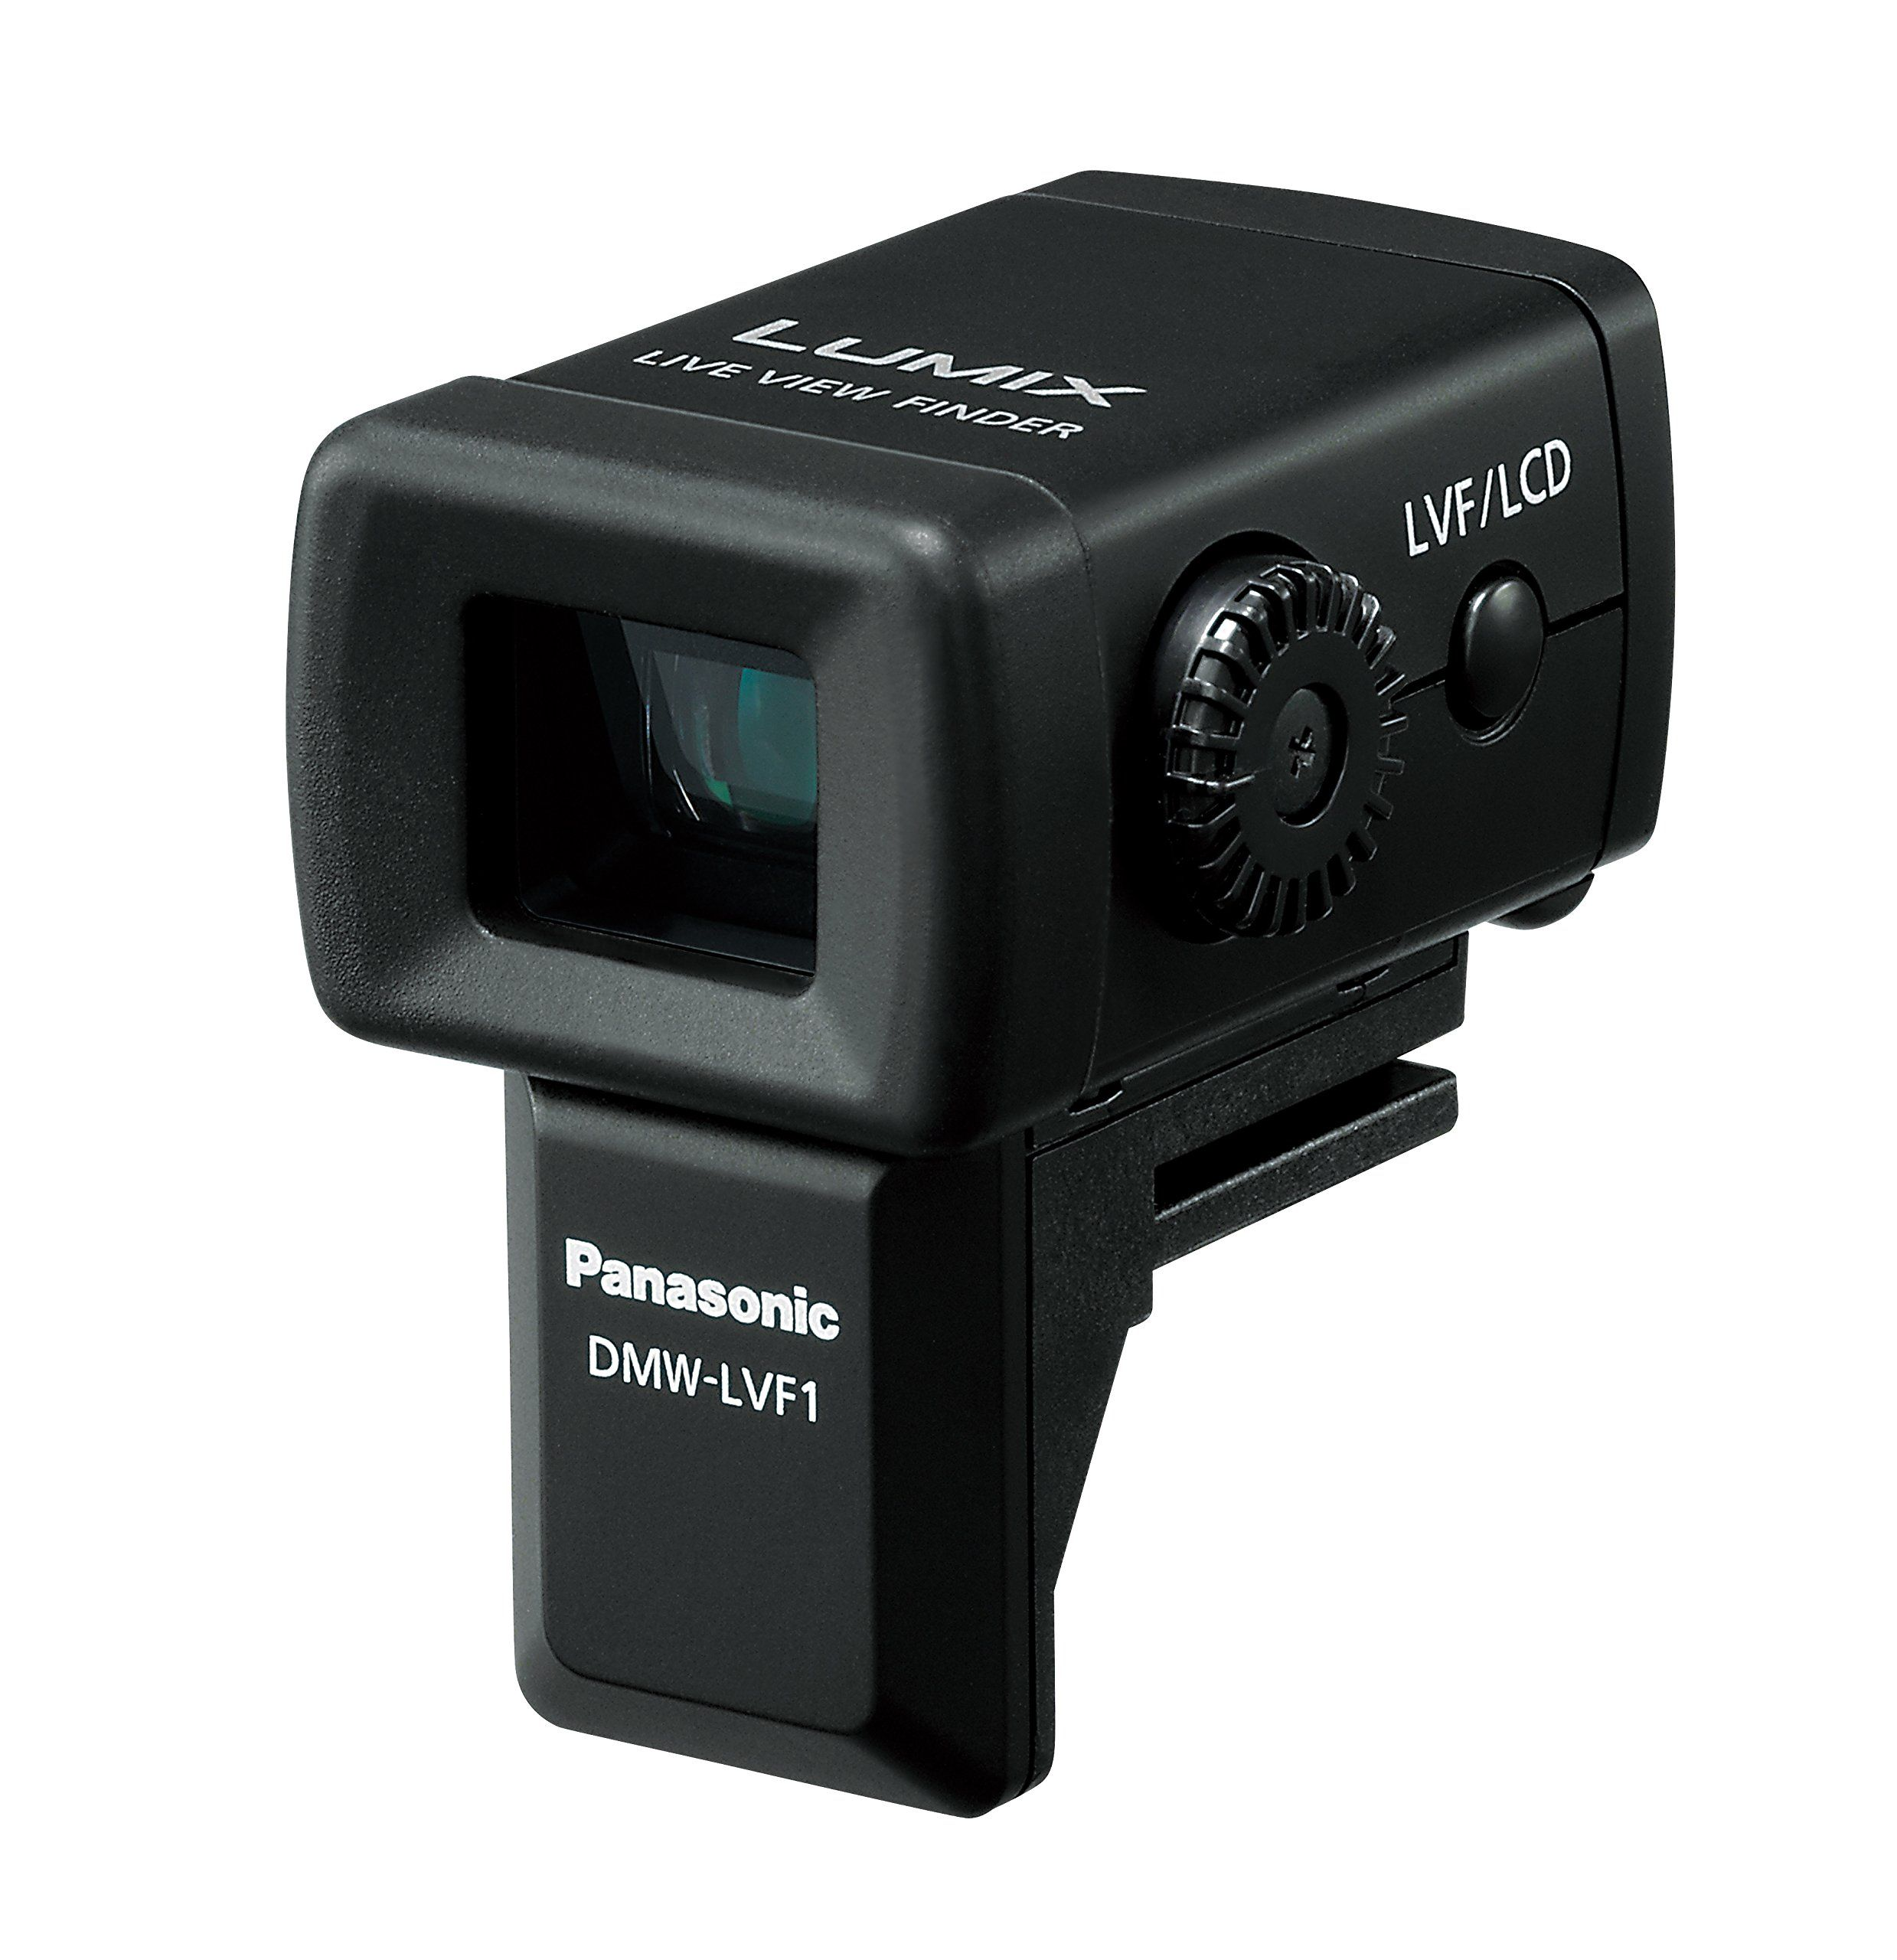 Panasonic Lumix Live Viewfinder For Gf1 Gf2 Dmwlvf1 Click On The Image For Additional Details View Finder Camera Lens Panasonic